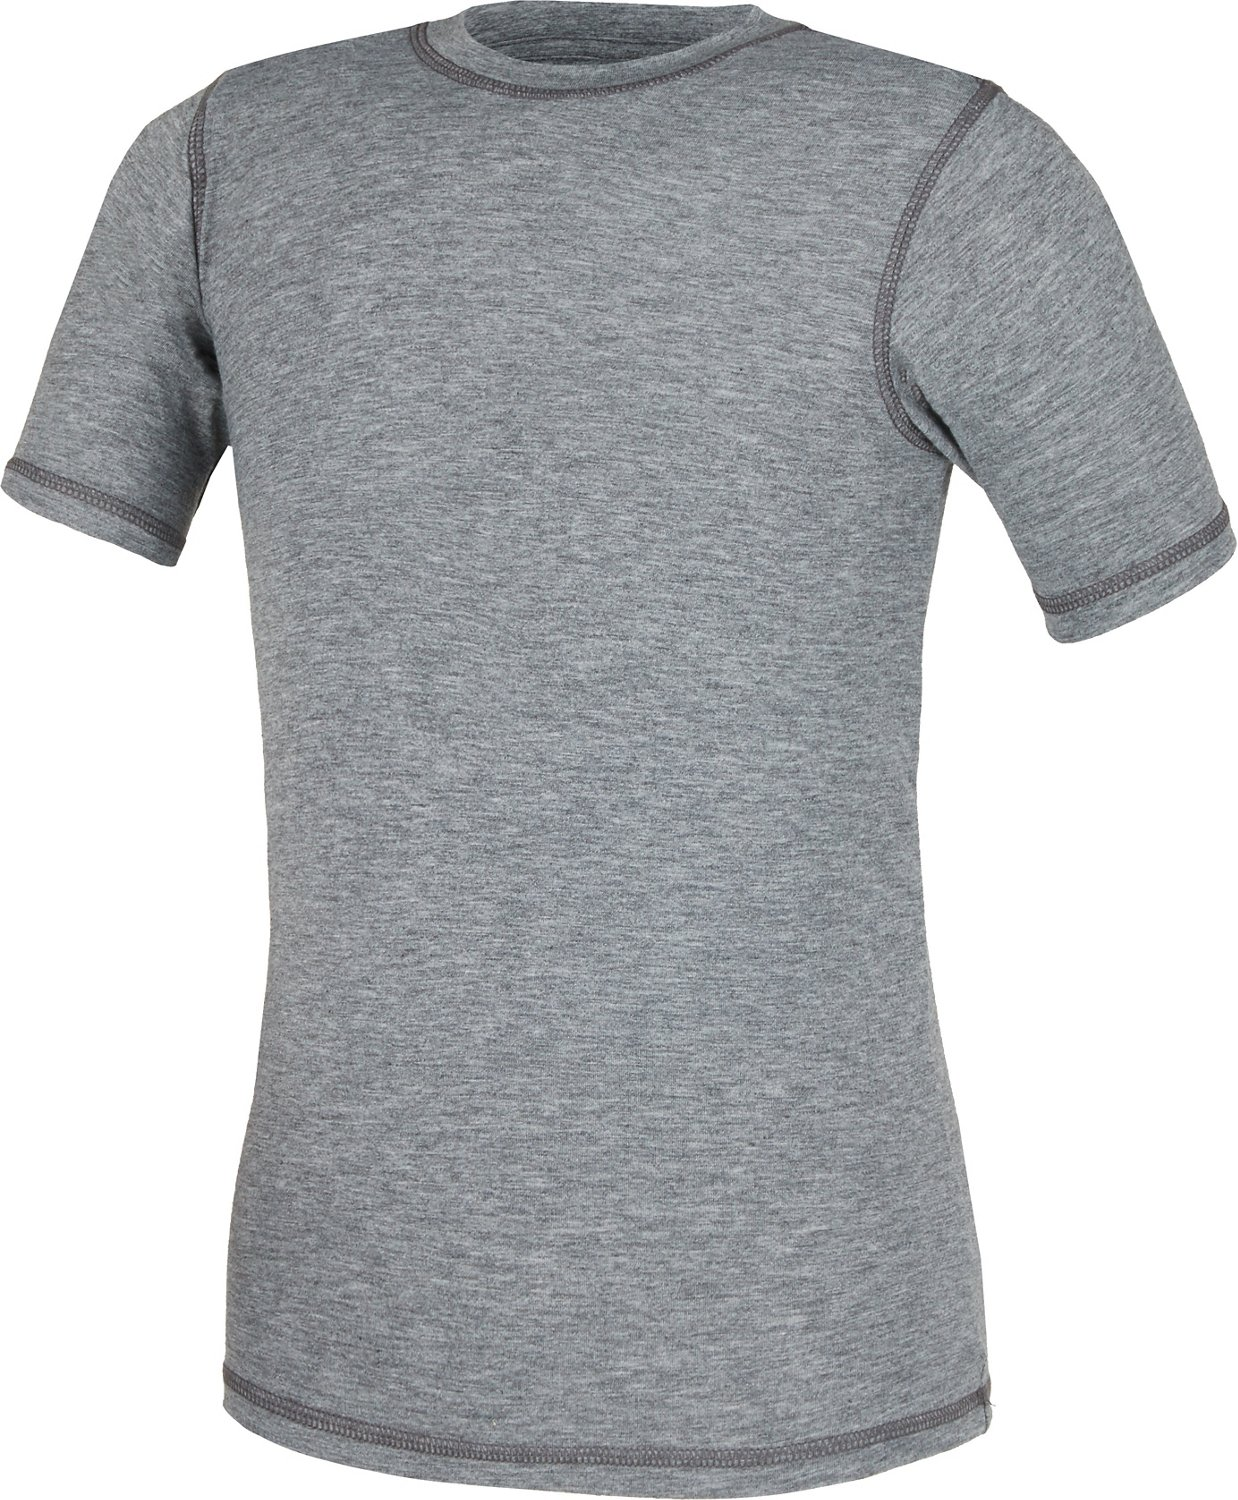 4e94d2d0a85 Display product reviews for Magellan Outdoors Boys' Catch and Release T- shirt